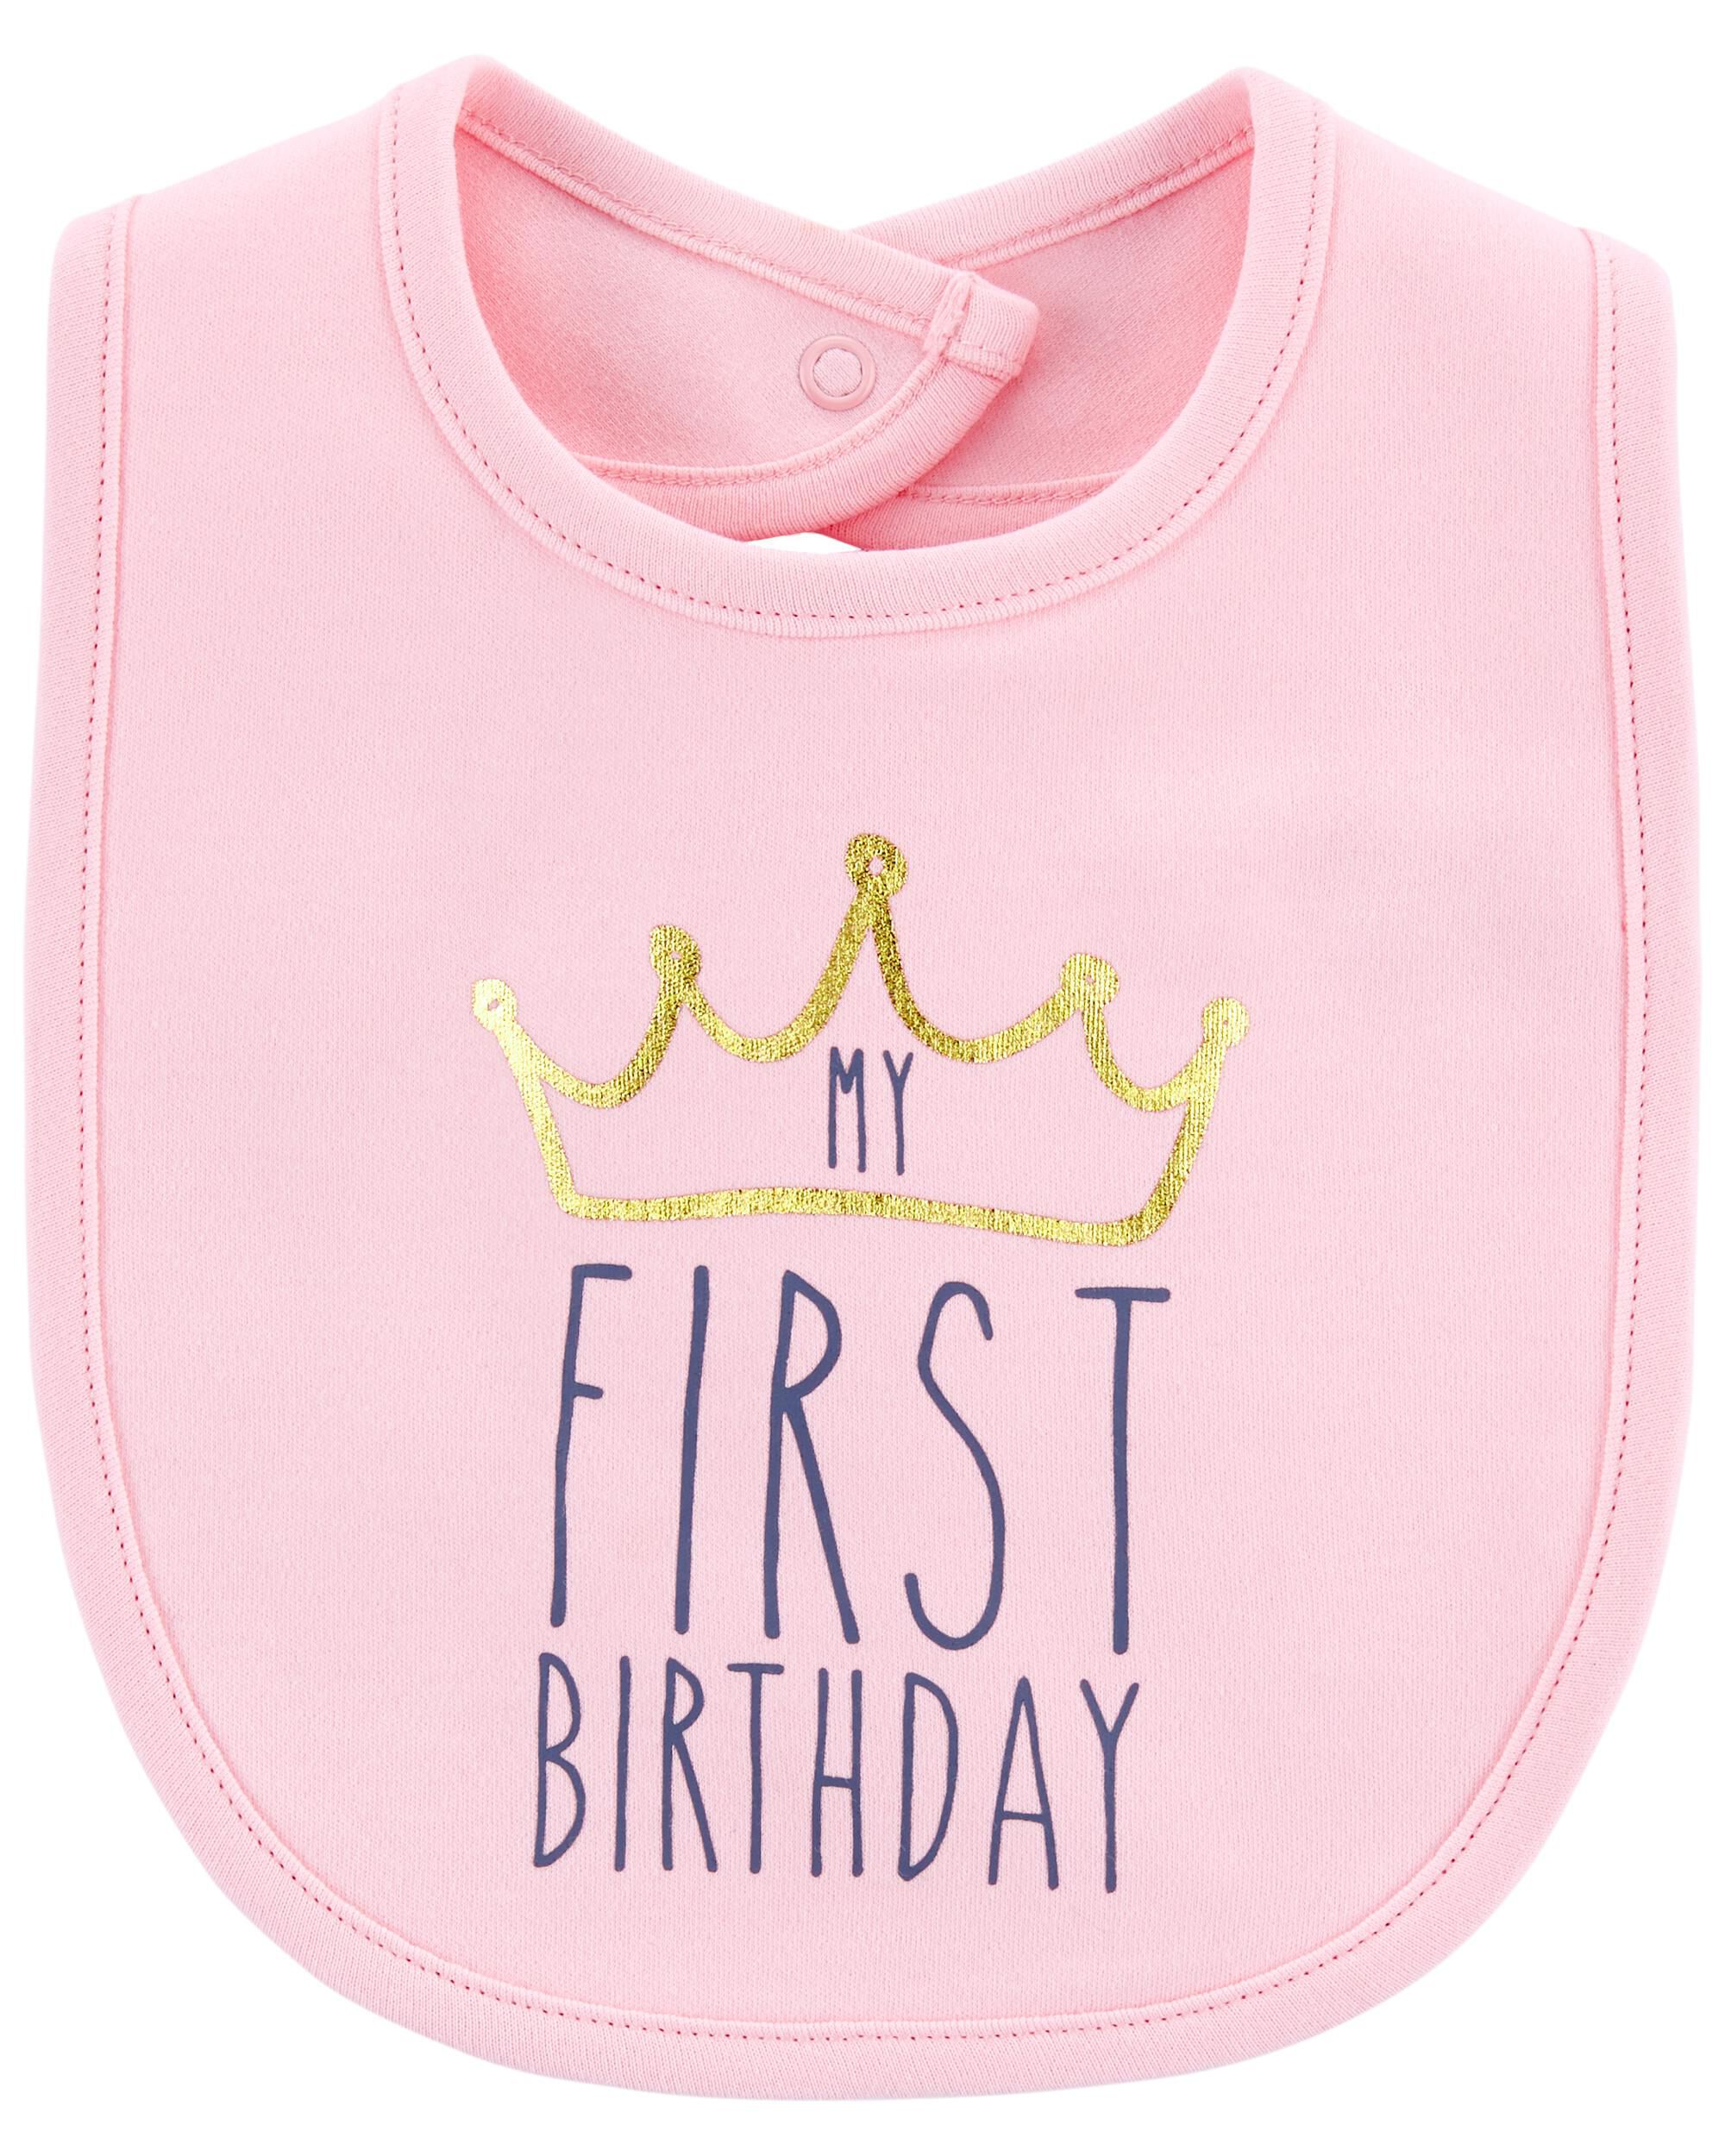 Oshkoshbgosh My First Birthday Teething Bib